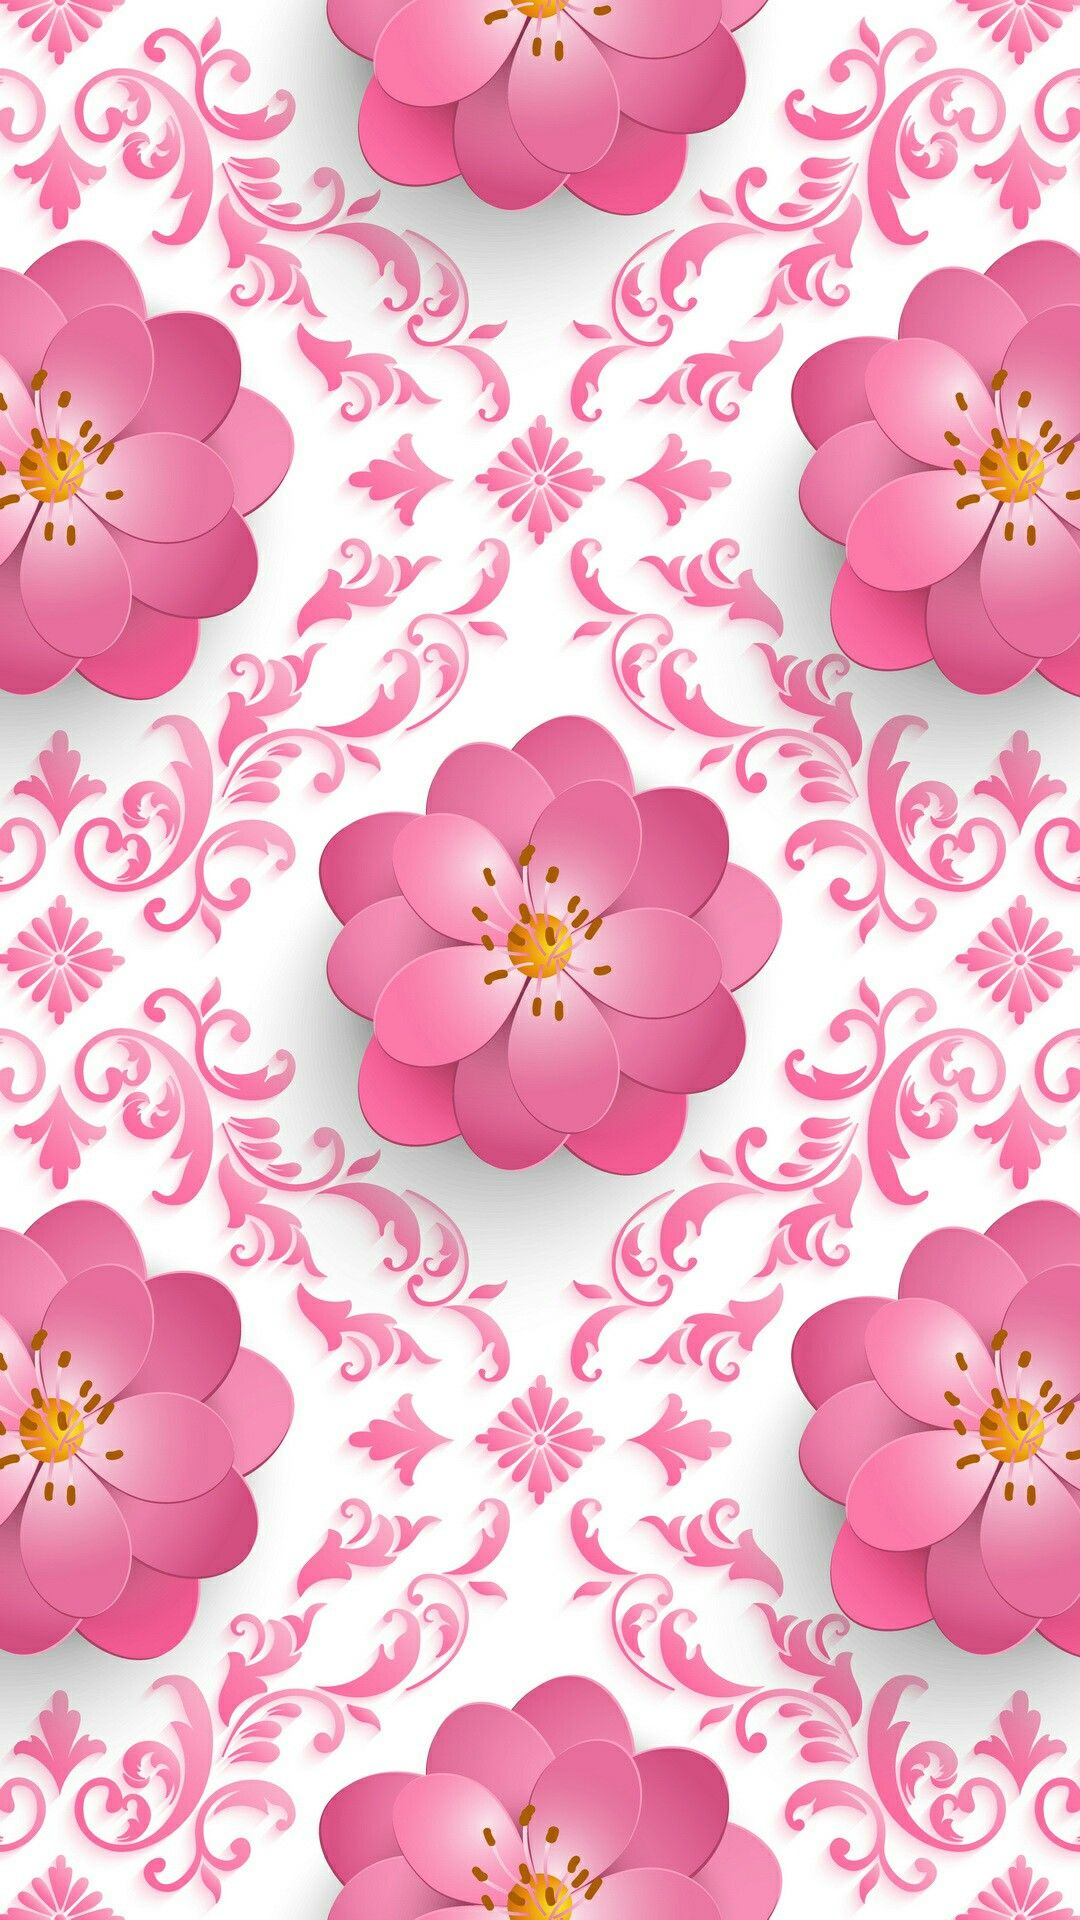 Pink 3d flower patterns graphicswallpapers pinterest flower pink 3d flower patterns mightylinksfo